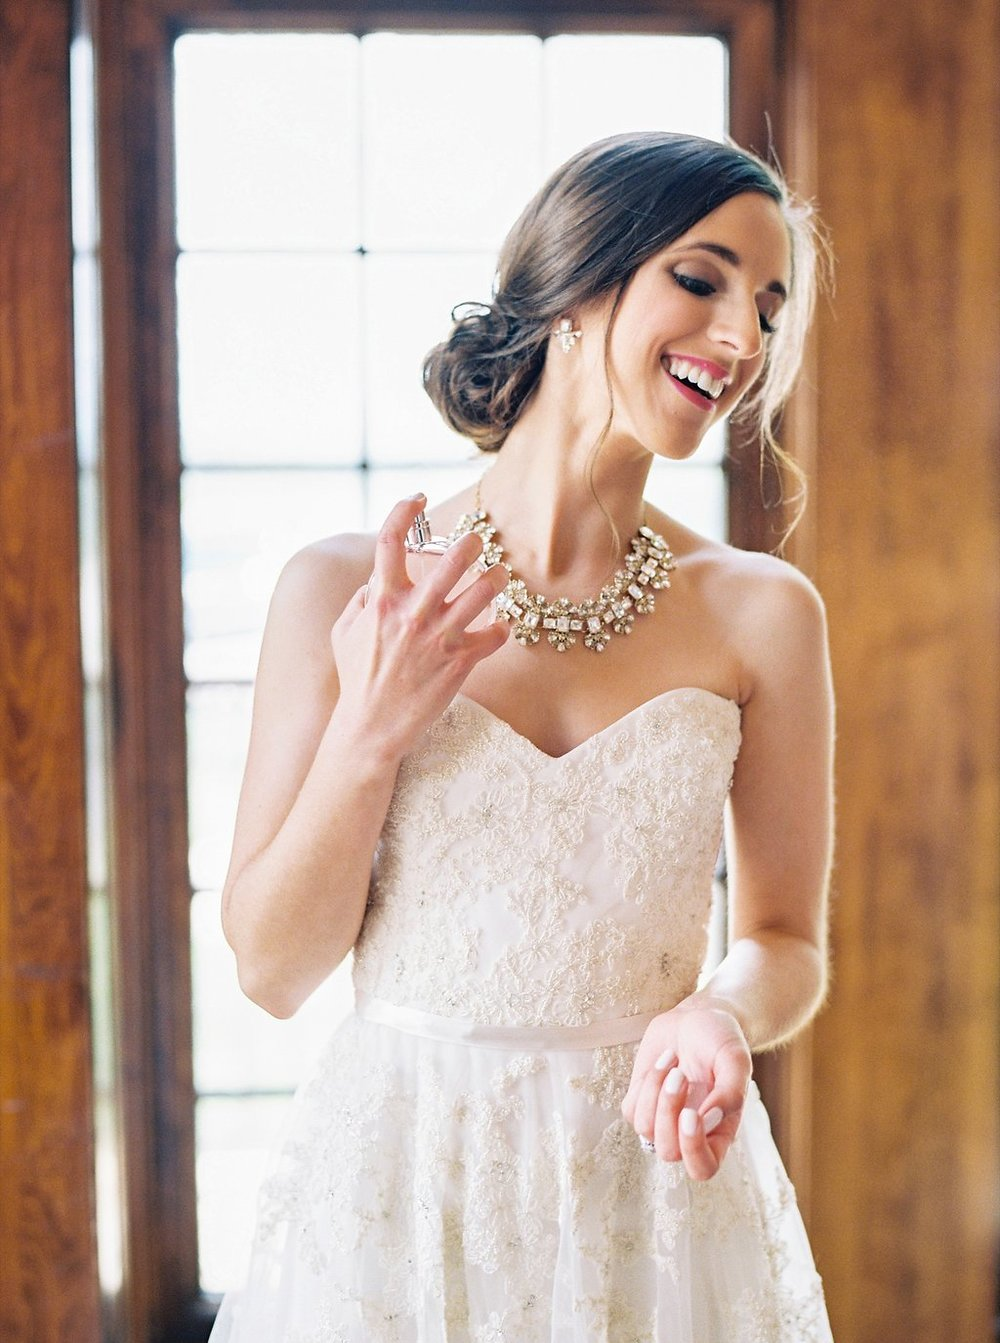 Bride Getting Ready Photos with Chanel Chance Perfume | Reem Acra Wedding Gown | Simply Jessica Marie's Southern Wedding | Photo by Perry Vaile Photography